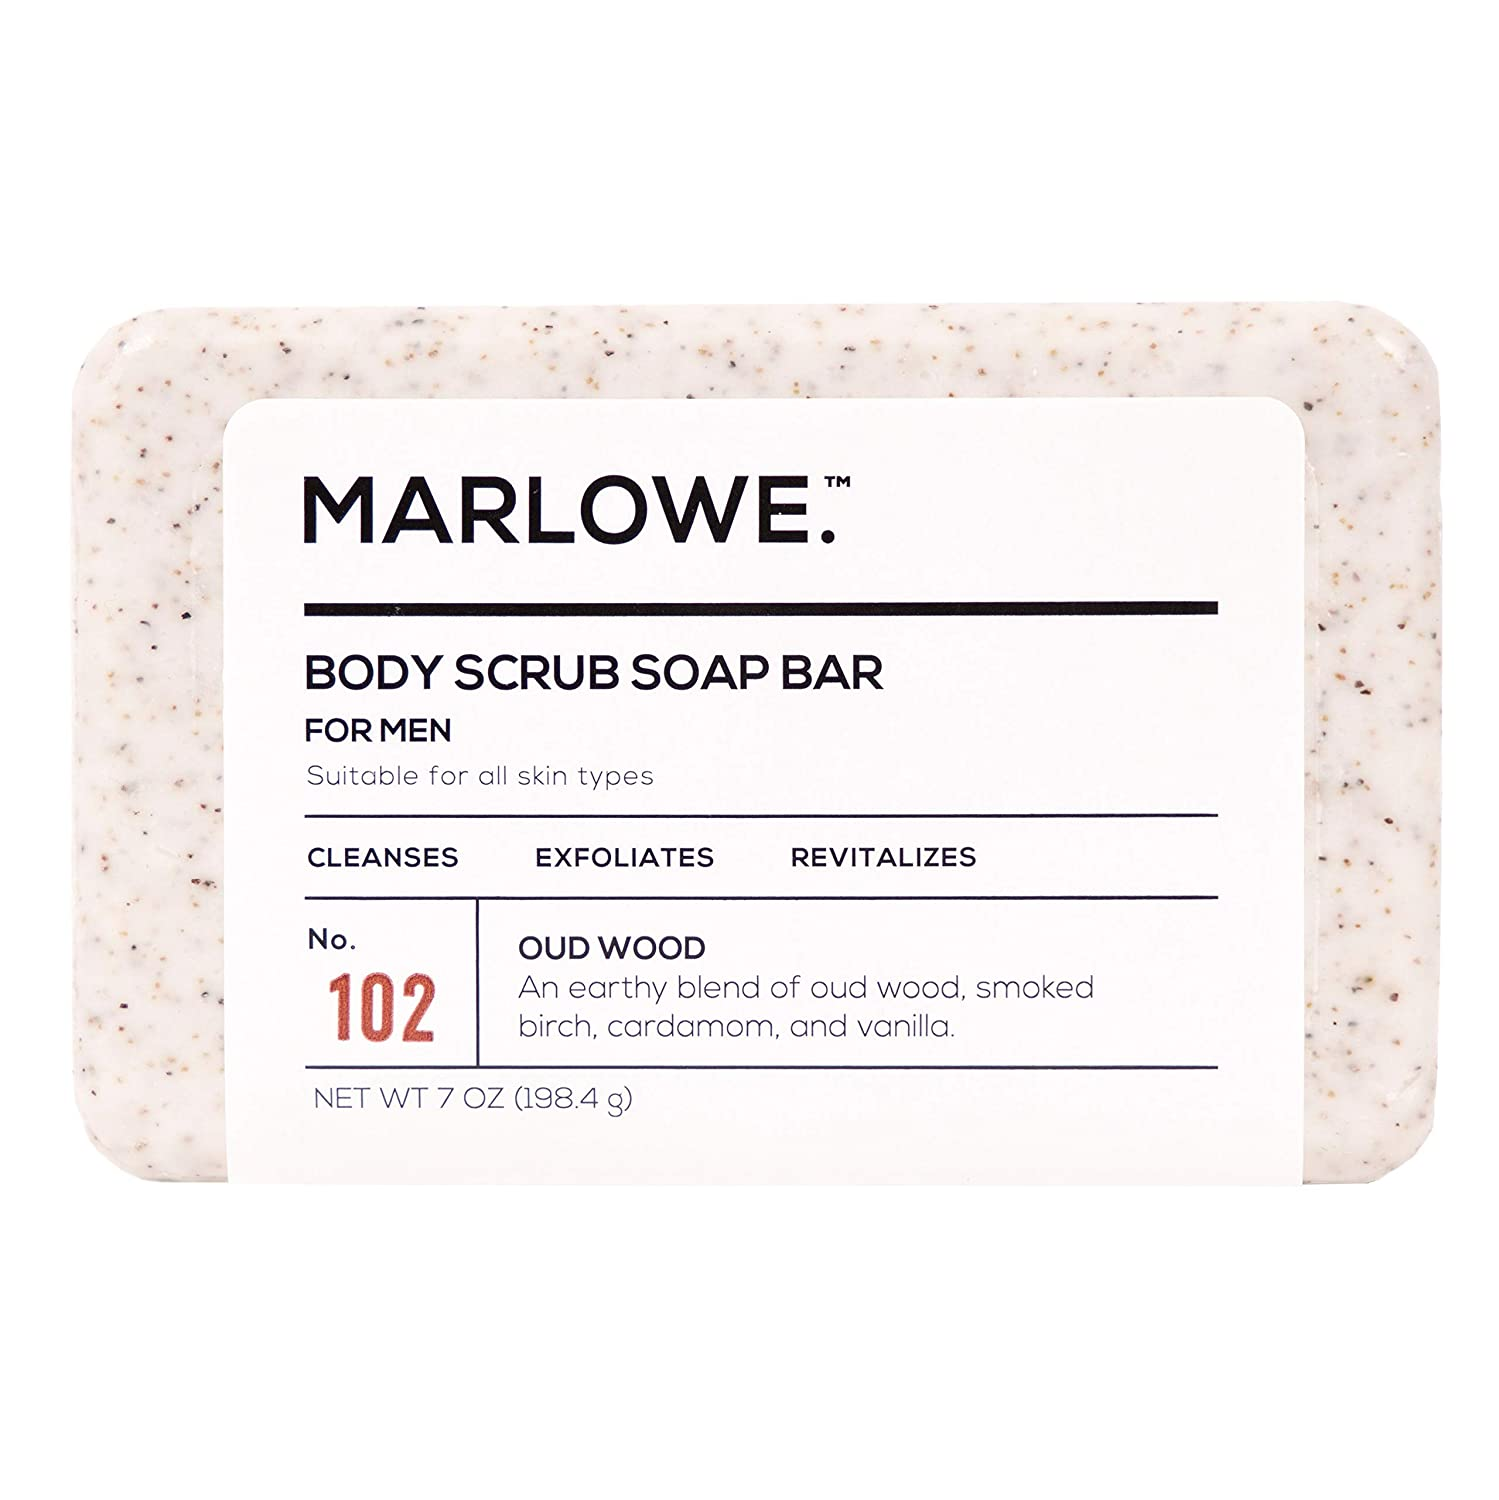 MARLOWE. No. 102 Men's Body Scrub Soap 7 oz | Earthy Oud Wood Scent | Best Exfoliating Bar for Men | Made with Natural Ingredients | Green Tea Extract | Updated Scent